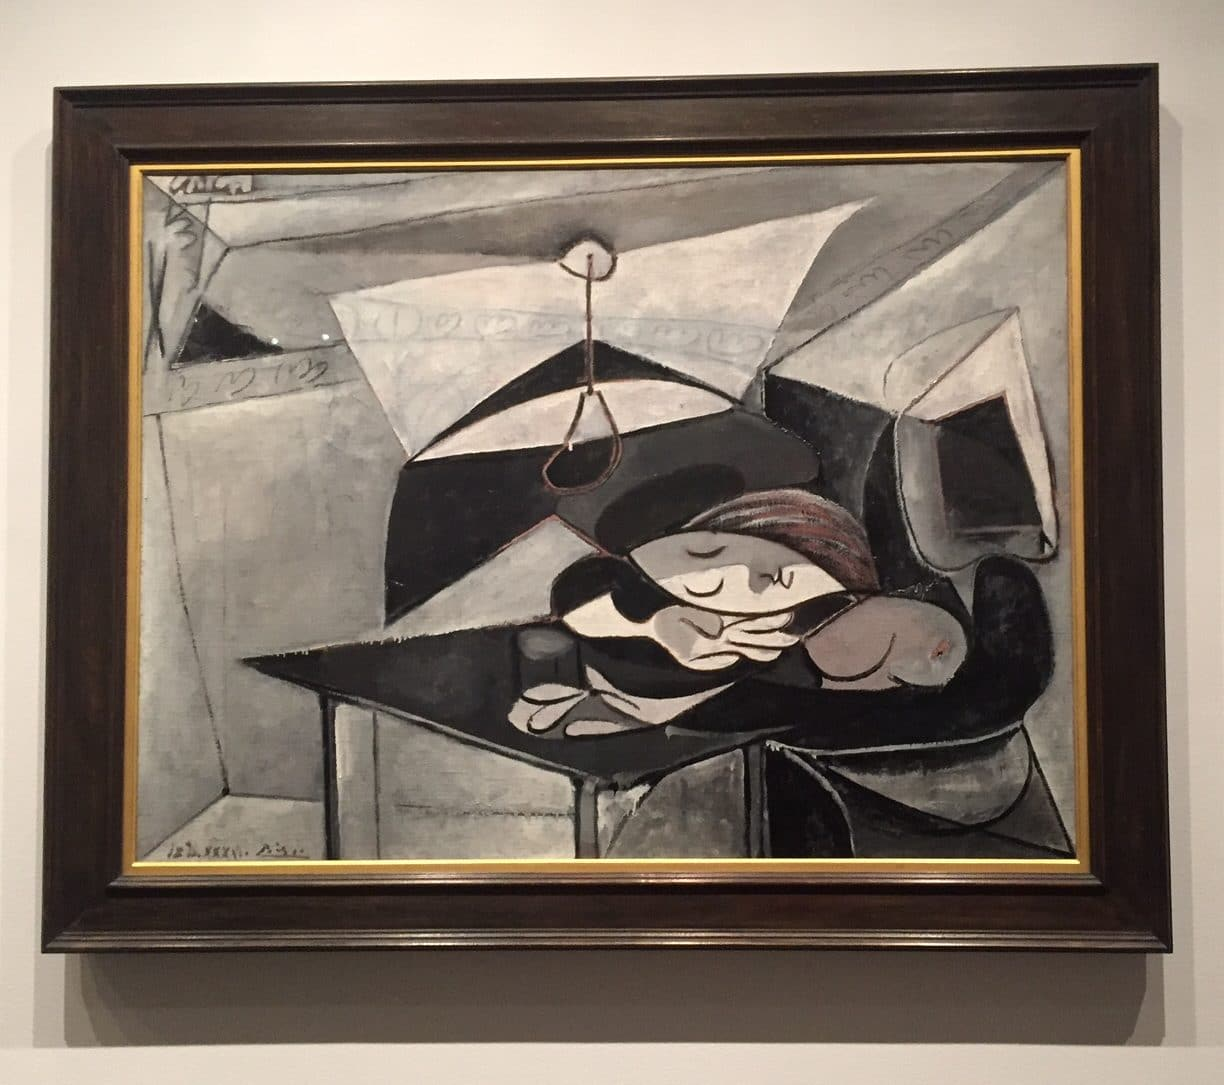 "Picasso's ""Woman Asleep at a Table"", 1936 from the Metropolitan Museum of Art"